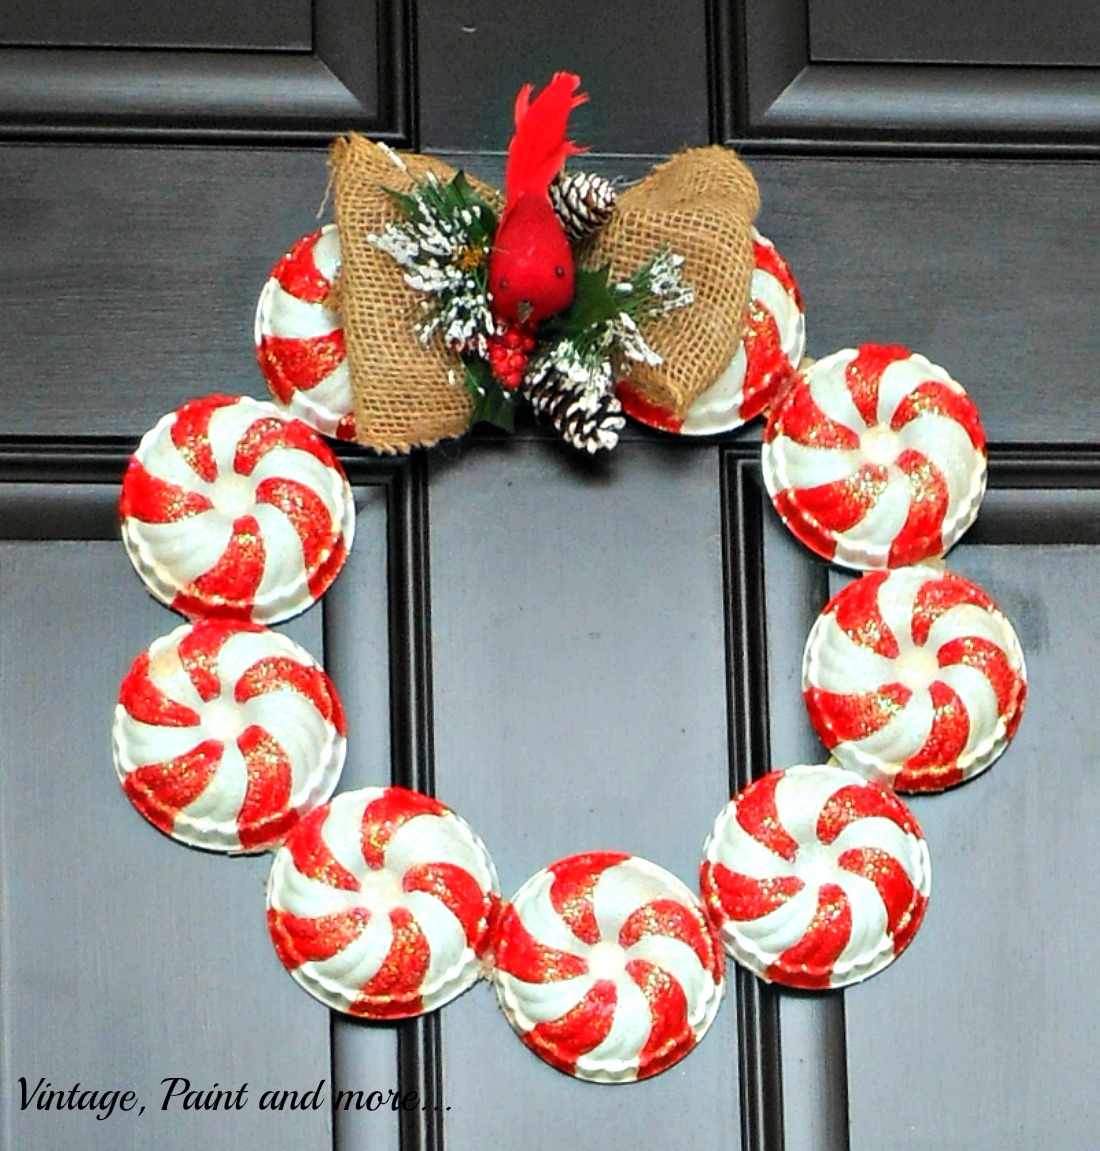 Pine Cone Wreath Tutorial | Vintage, Paint and more...